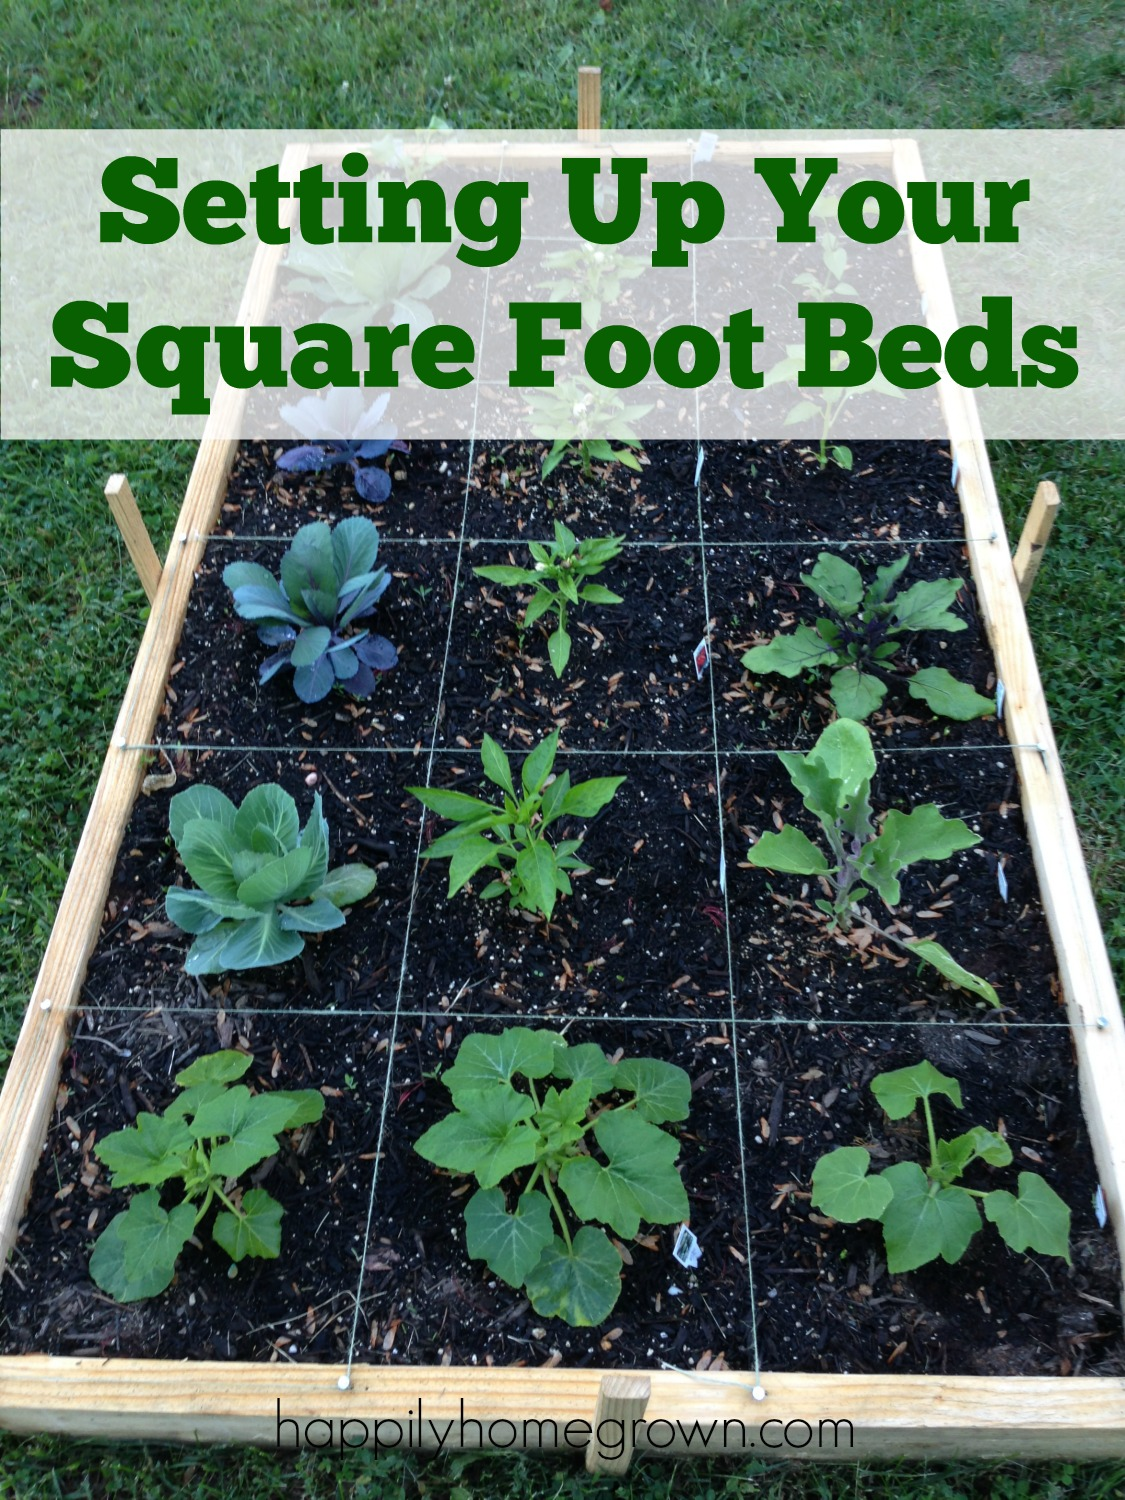 Setting Up Your Square Foot Beds - The whole idea behind Square Foot Gardening (SFG) is to grow more in less space. This saves you time, money, and resources while producing an abundance of produce!